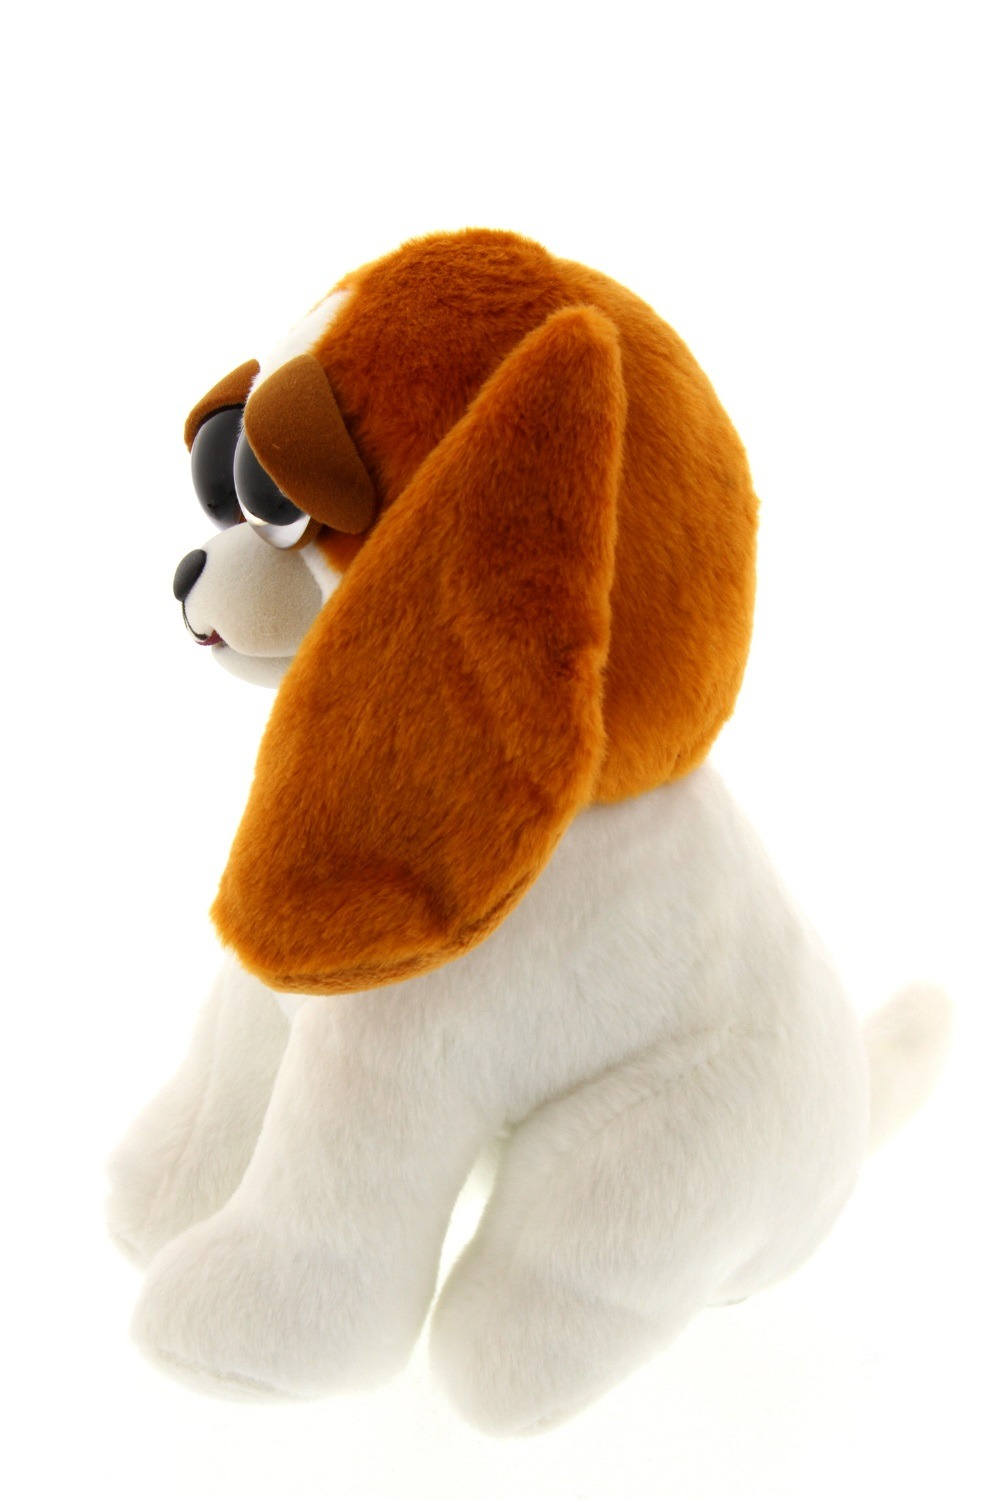 Feisty-Pets-Plush-Stuffed-Animals-Turn-Silly-Sly-amp-Feisty-New-2018-Many-Options